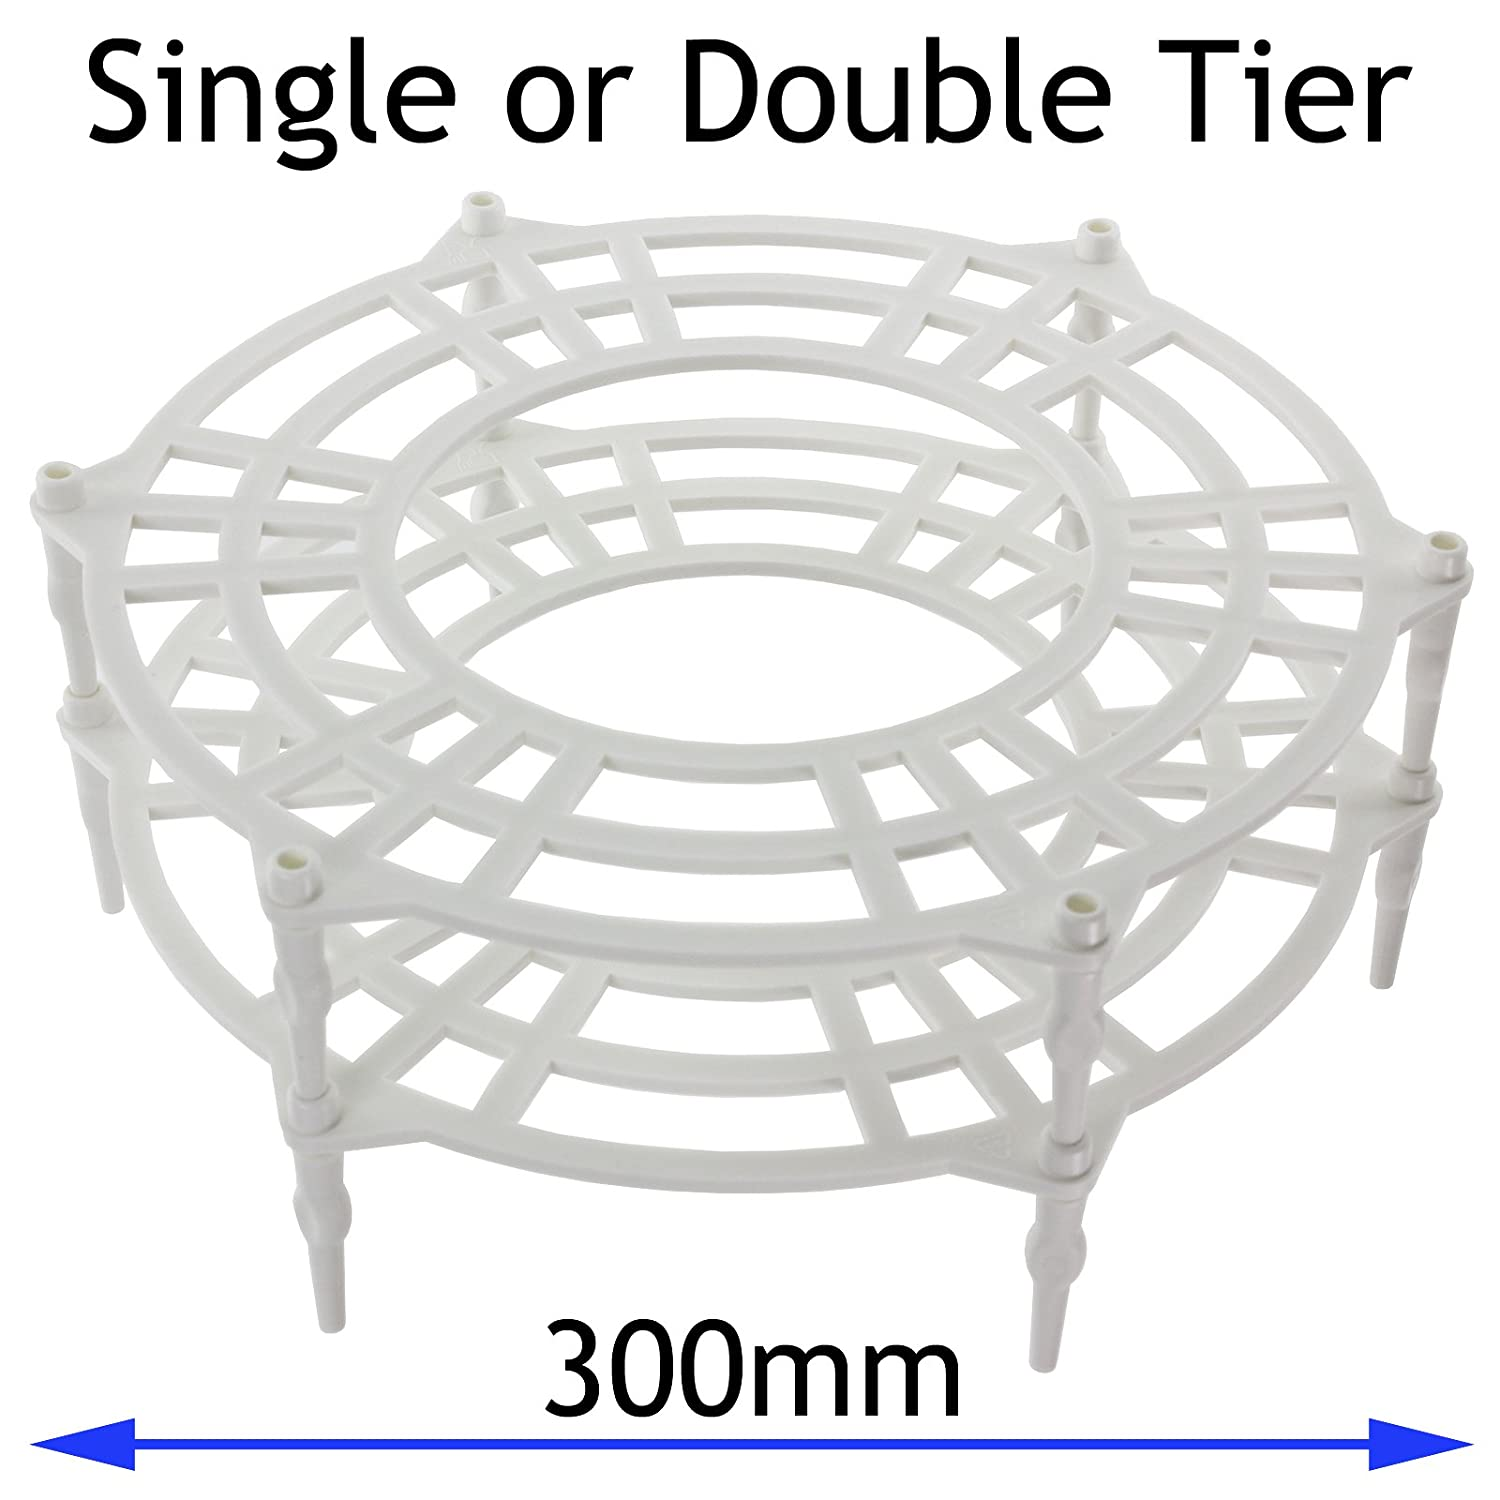 SPARES2GO 300mm Single + Double Tier Plate Stand Rack for Morphy Richards Microwave Ovens